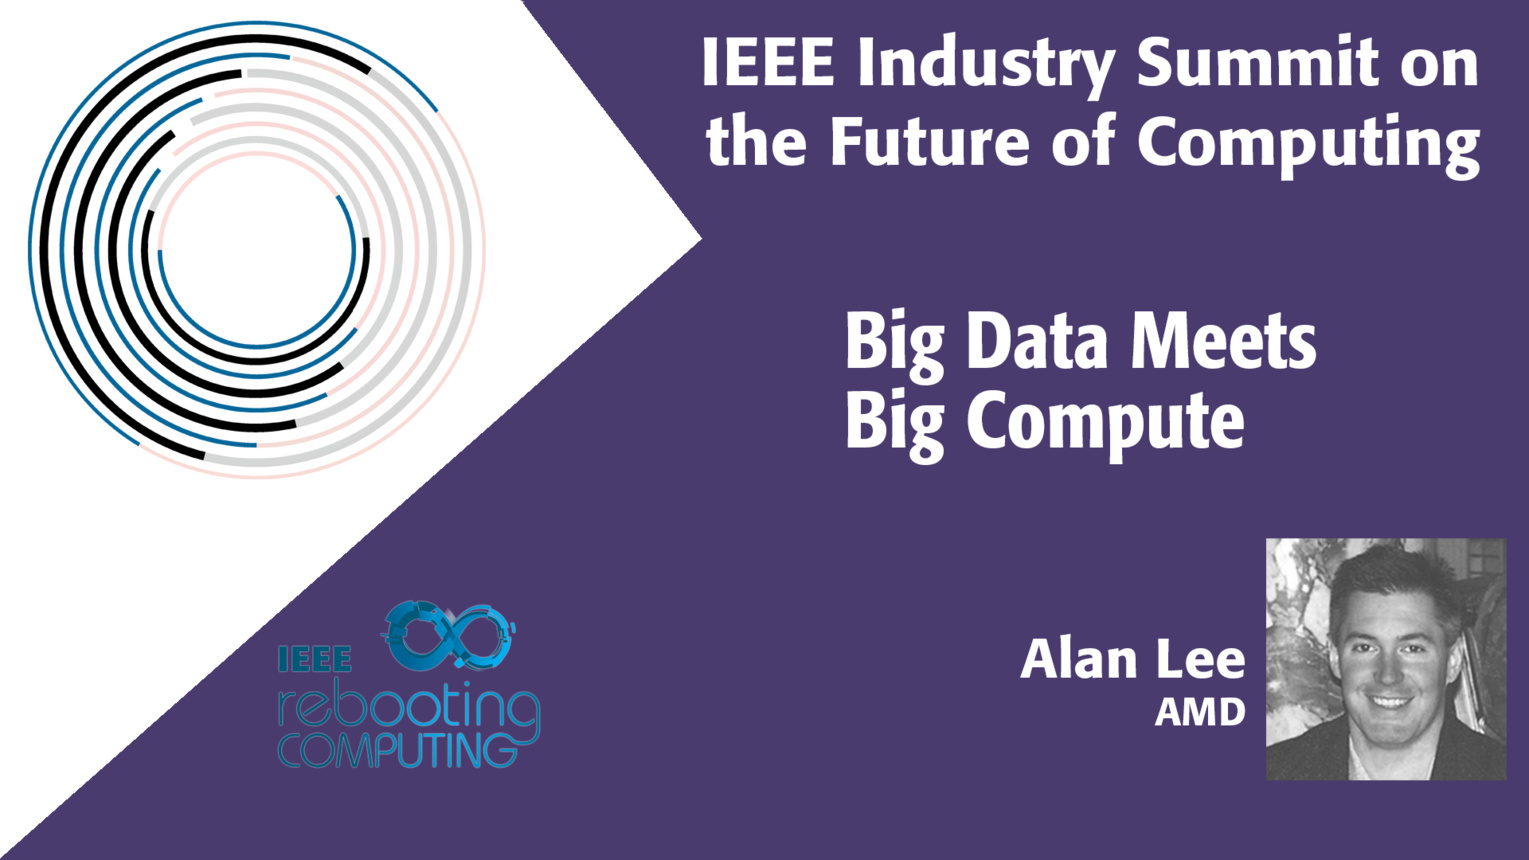 Big Data Meets Big Compute - 2018 IEEE Industry Summit on the Future of Computing